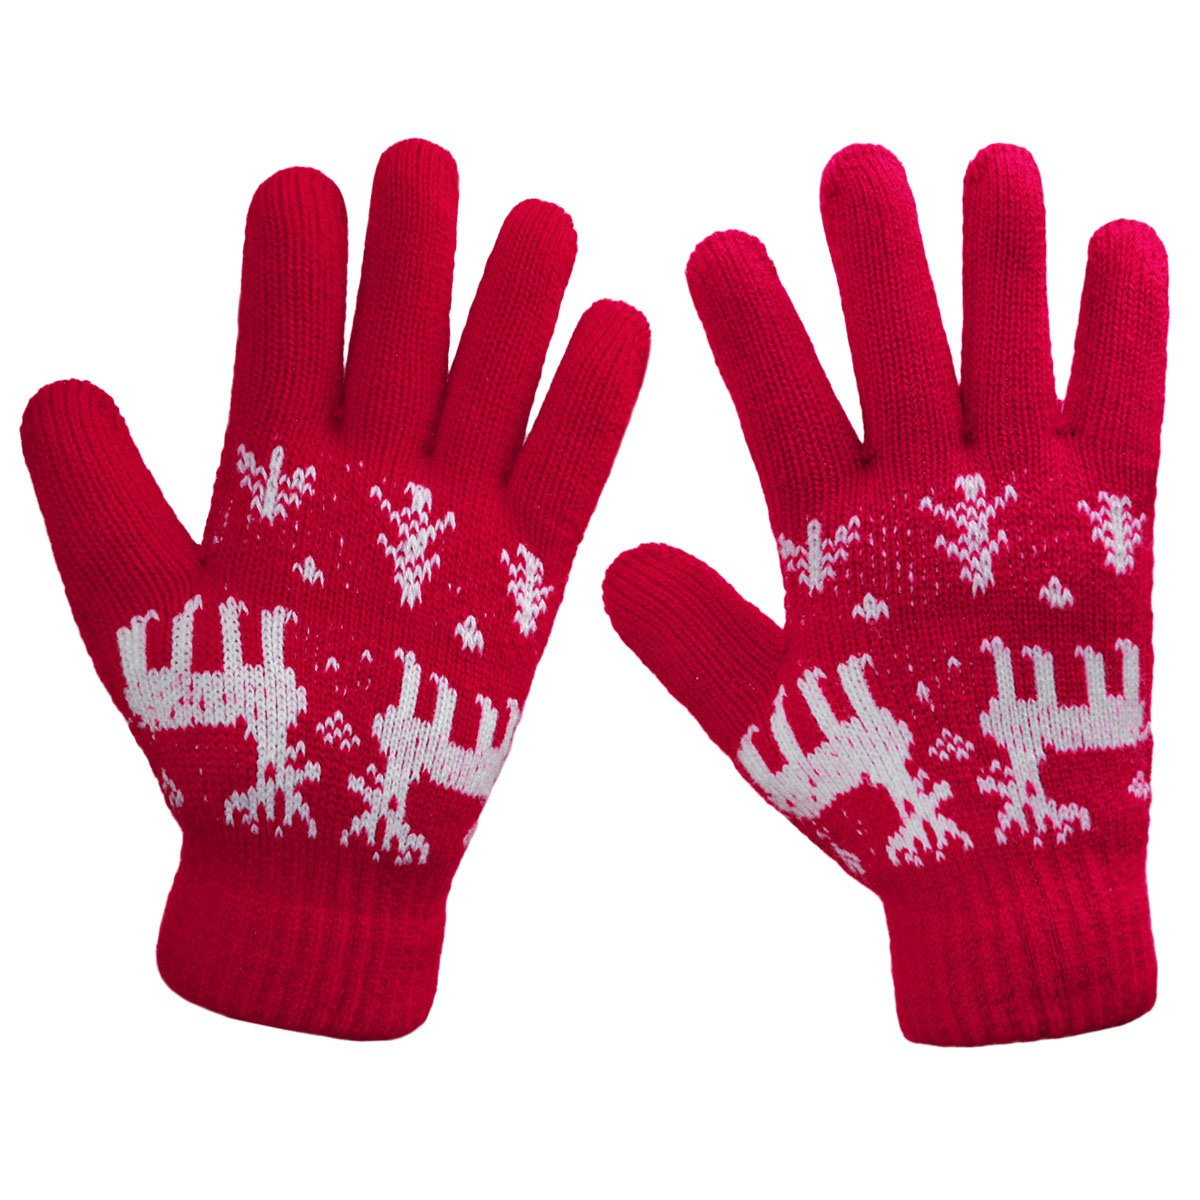 LETHMIK Christmas Thick Knit Gloves Winter Deer Knitted Warm Glove for Women&Girls Red,One Size (Superior Elasticity)